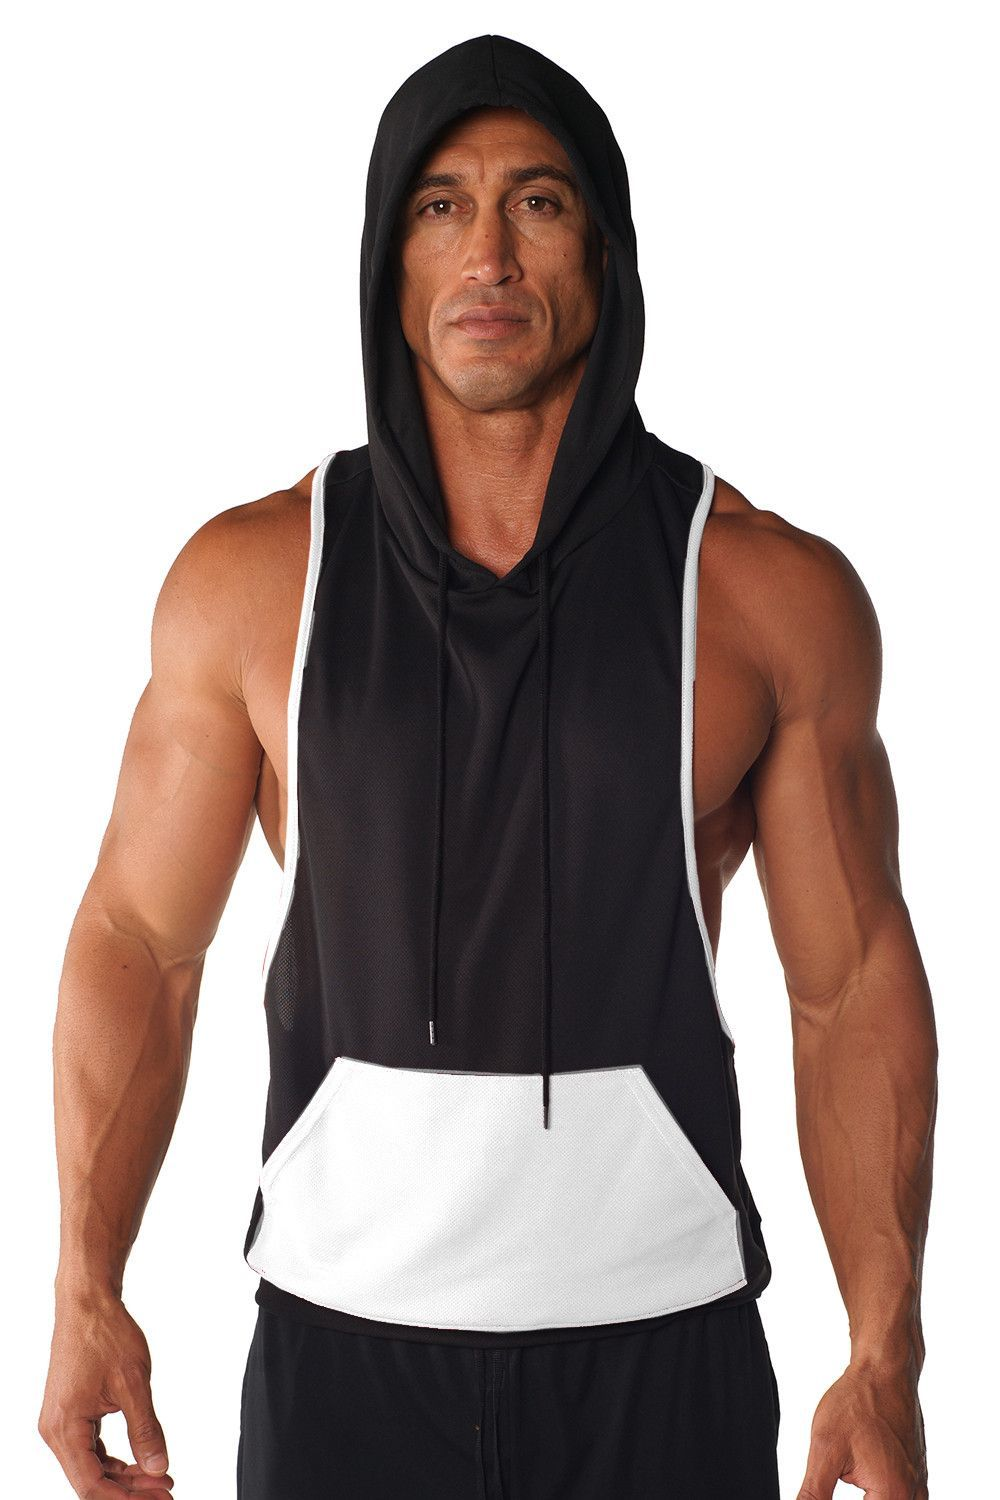 e7276a807 SKU M532 This light-weight, sleeveless hoodie is made from DRI-FIT fabric  that… Be featured in Model Citizen App, Magazine and Blog.  www.modelcitizenapp.com